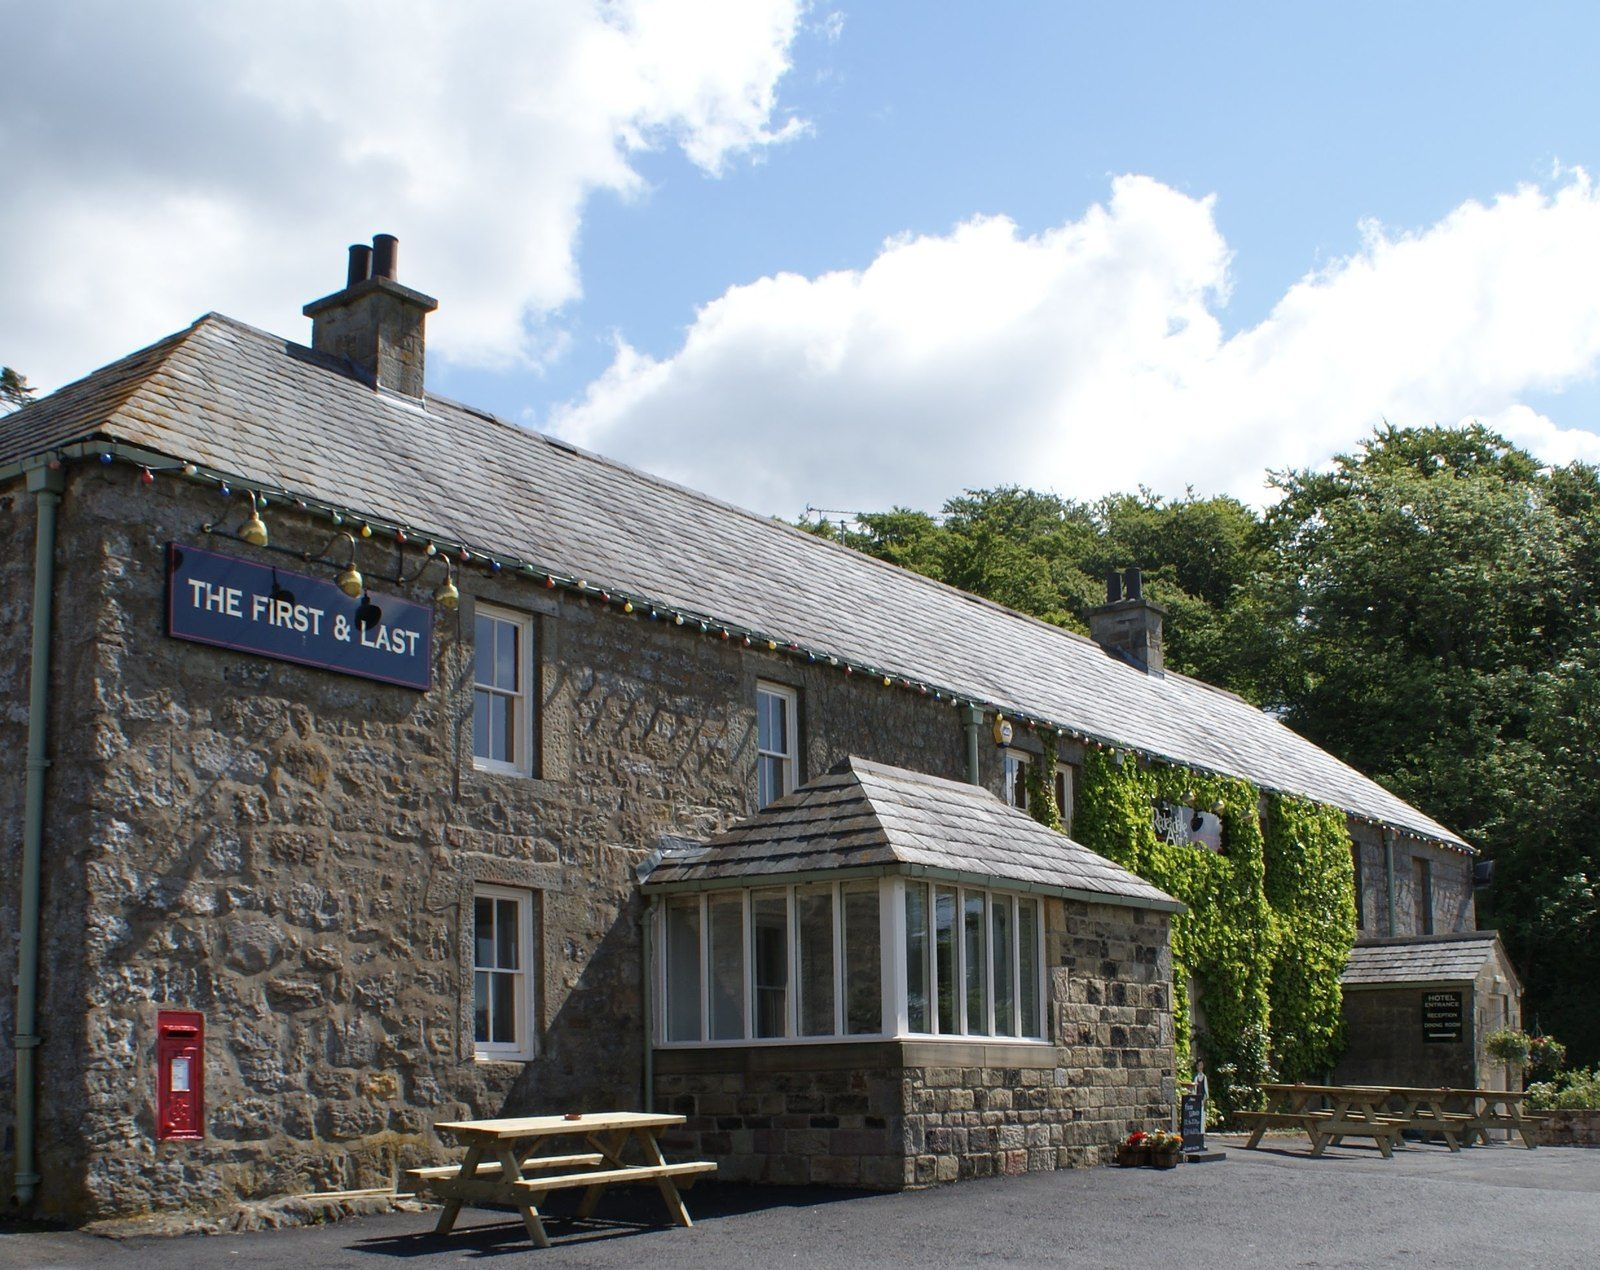 The Redesdale Arms public house and hotel